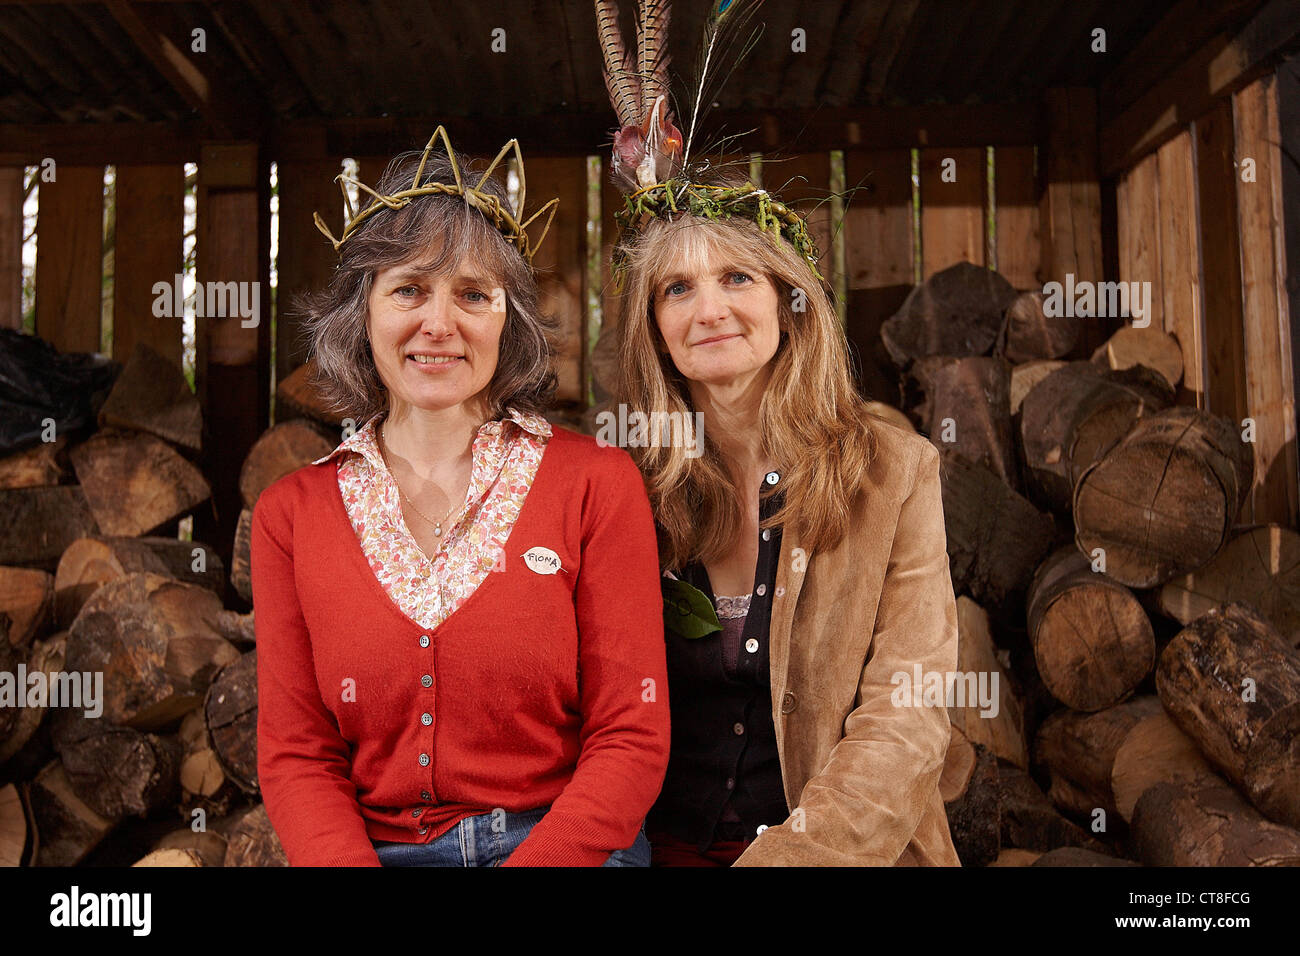 Adventures with Sticks book authors Jo Schofield (L) & Fiona Danks (R) at launch event at BBOWT College Lake - Stock Image